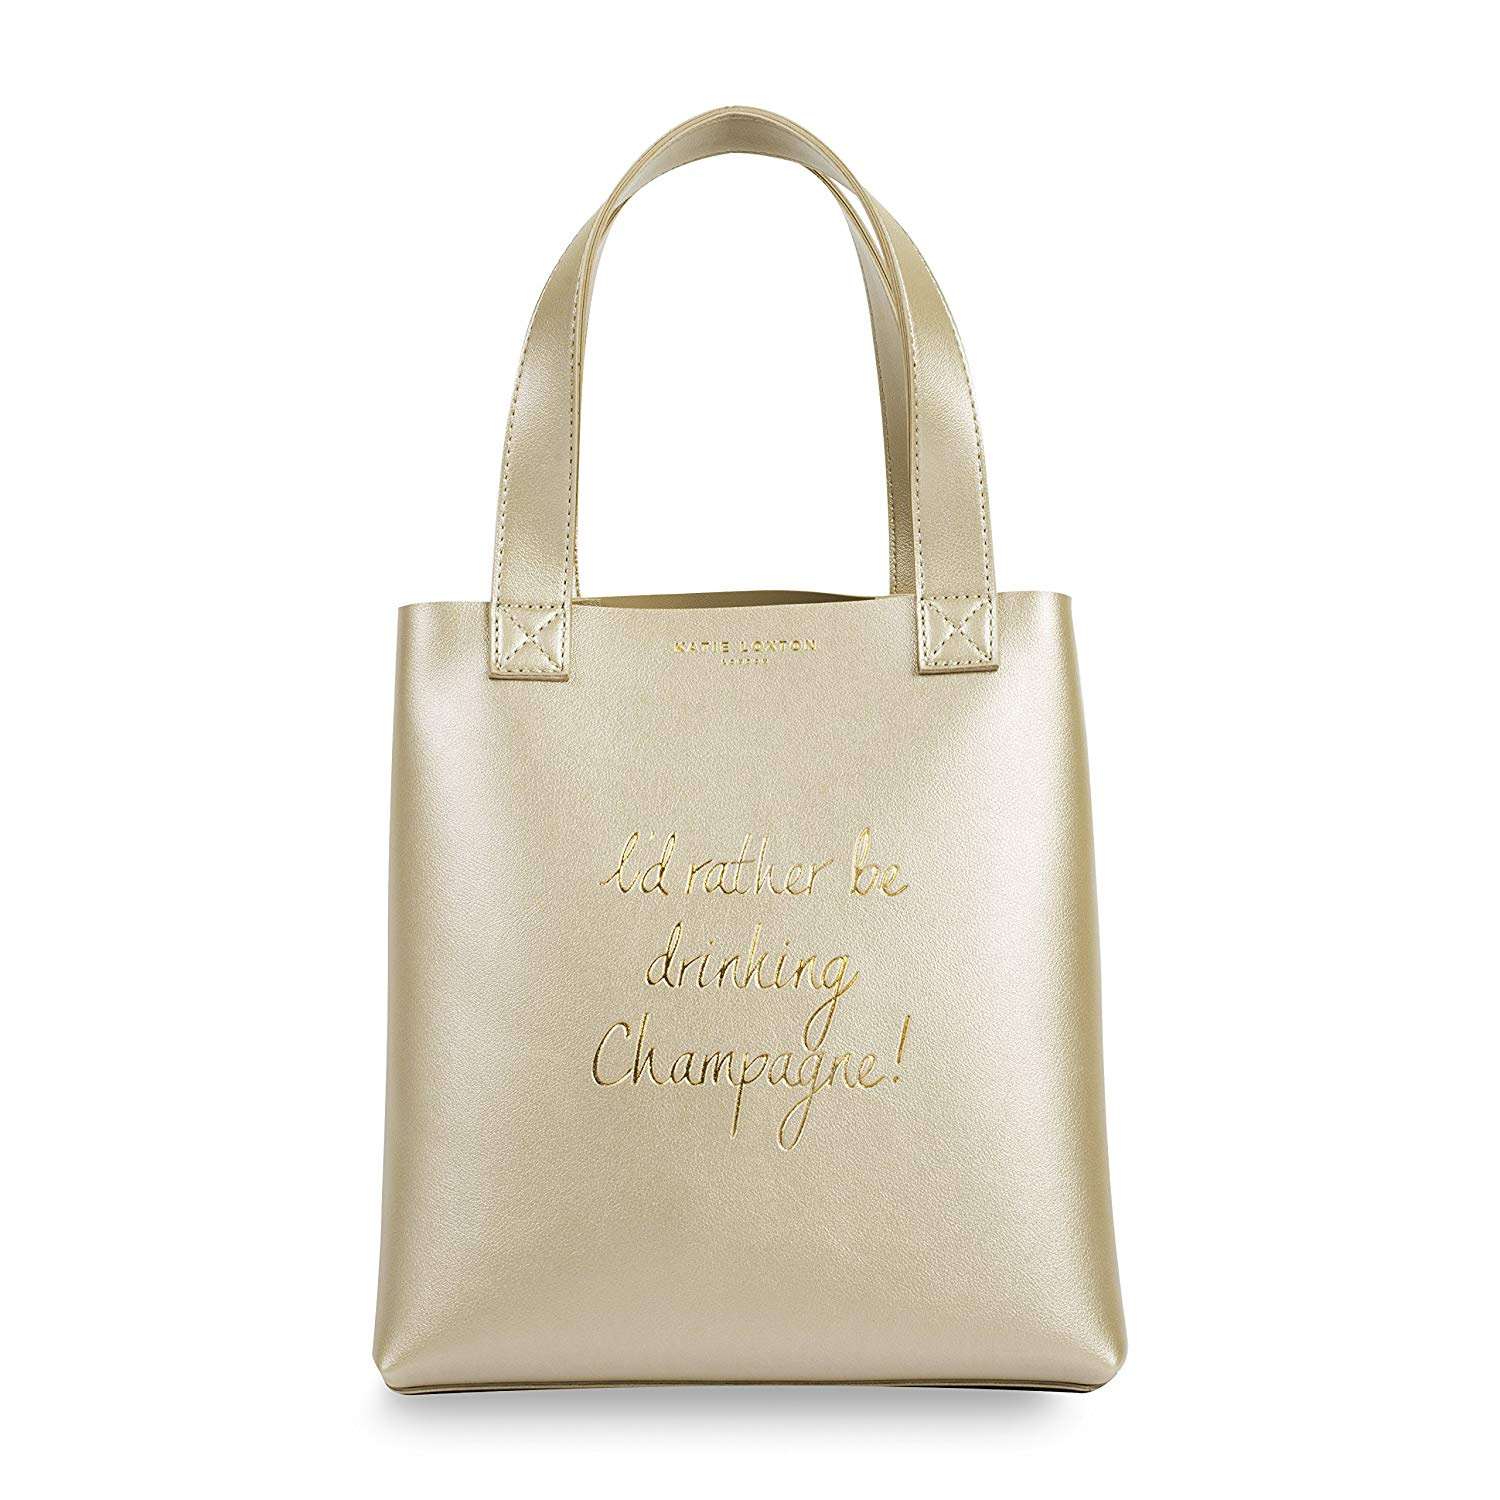 e7a26f36db6 Katie Loxton Bags: Buy Online from Fishpond.com.au